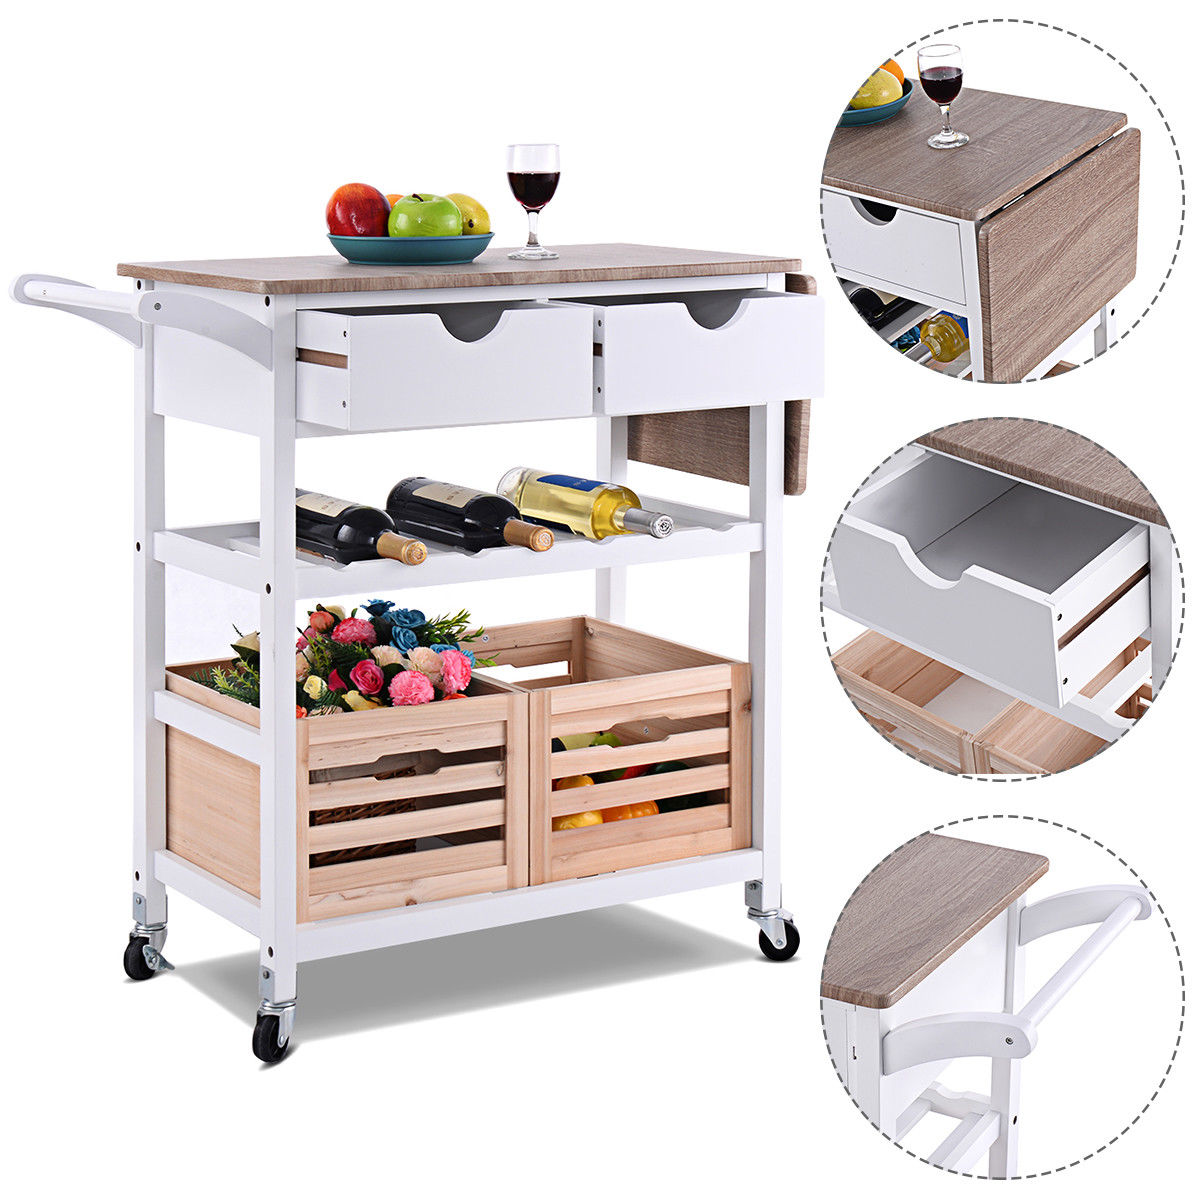 kitchen wine rack large clocks rolling trolley island cart drop leaf w storage drawer qty